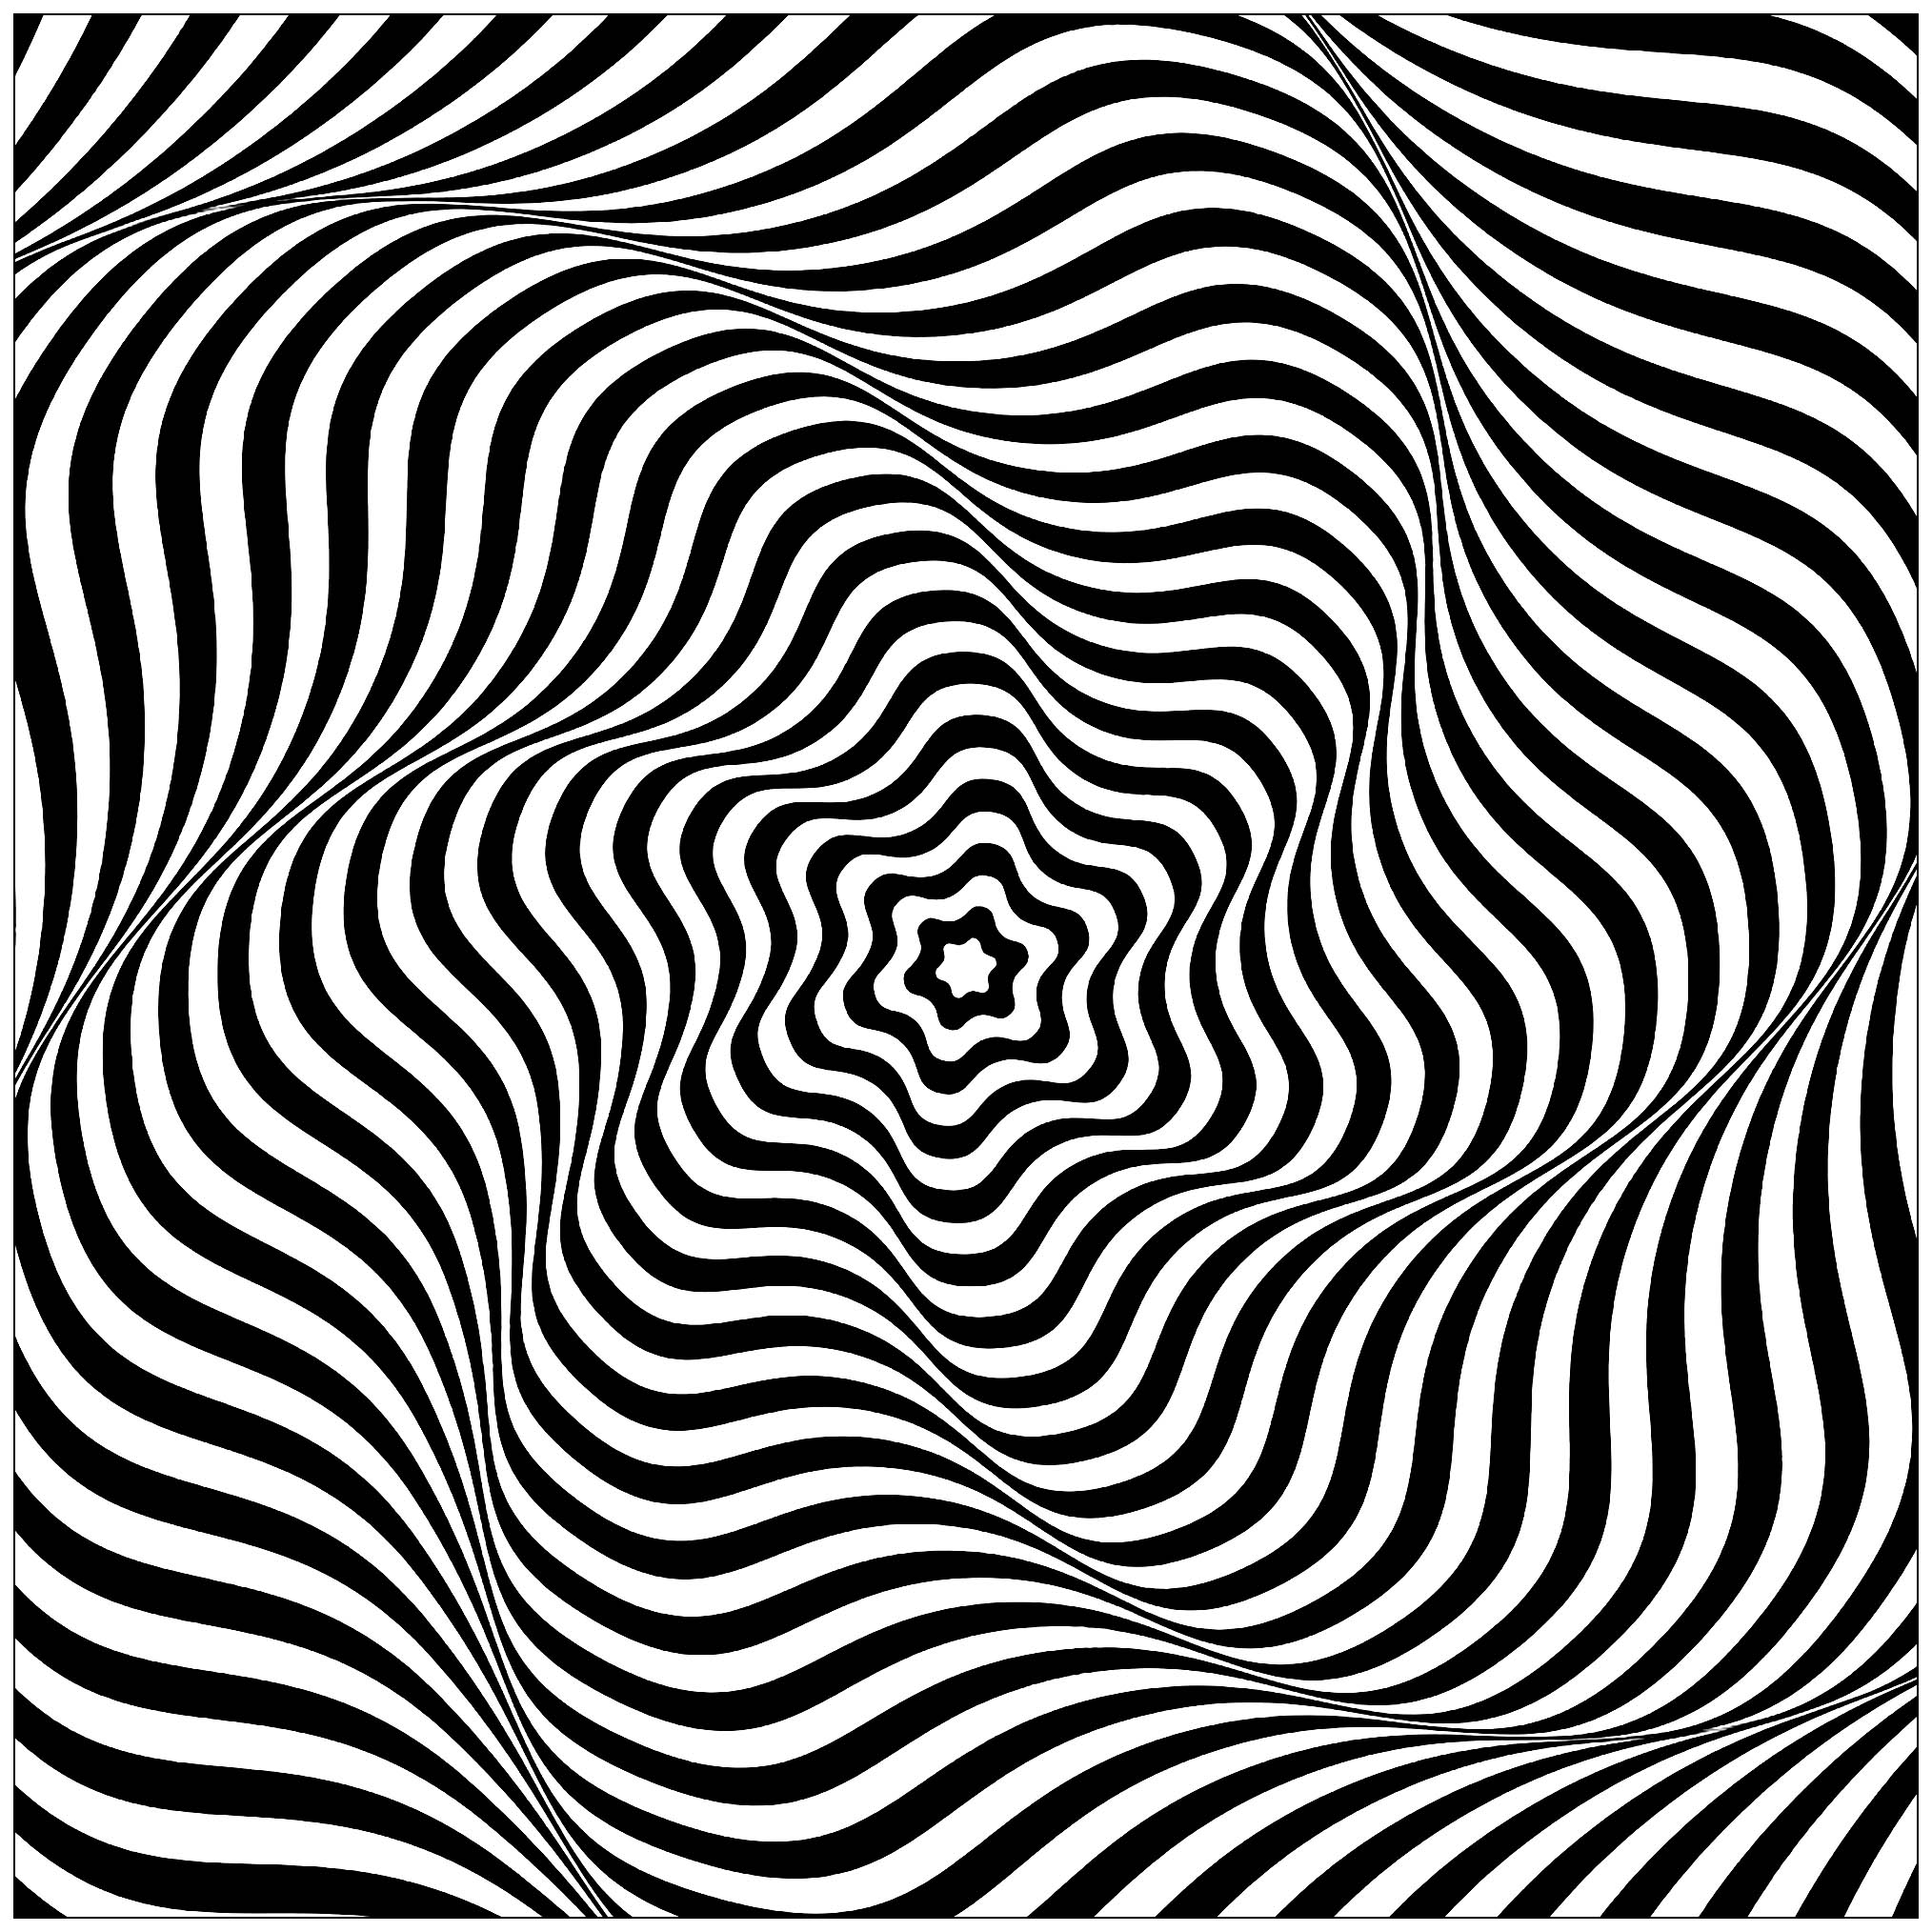 Op art impression mouvement rotation art optique coloriages difficiles pour adultes - Mini coloriage illusion d optique ...